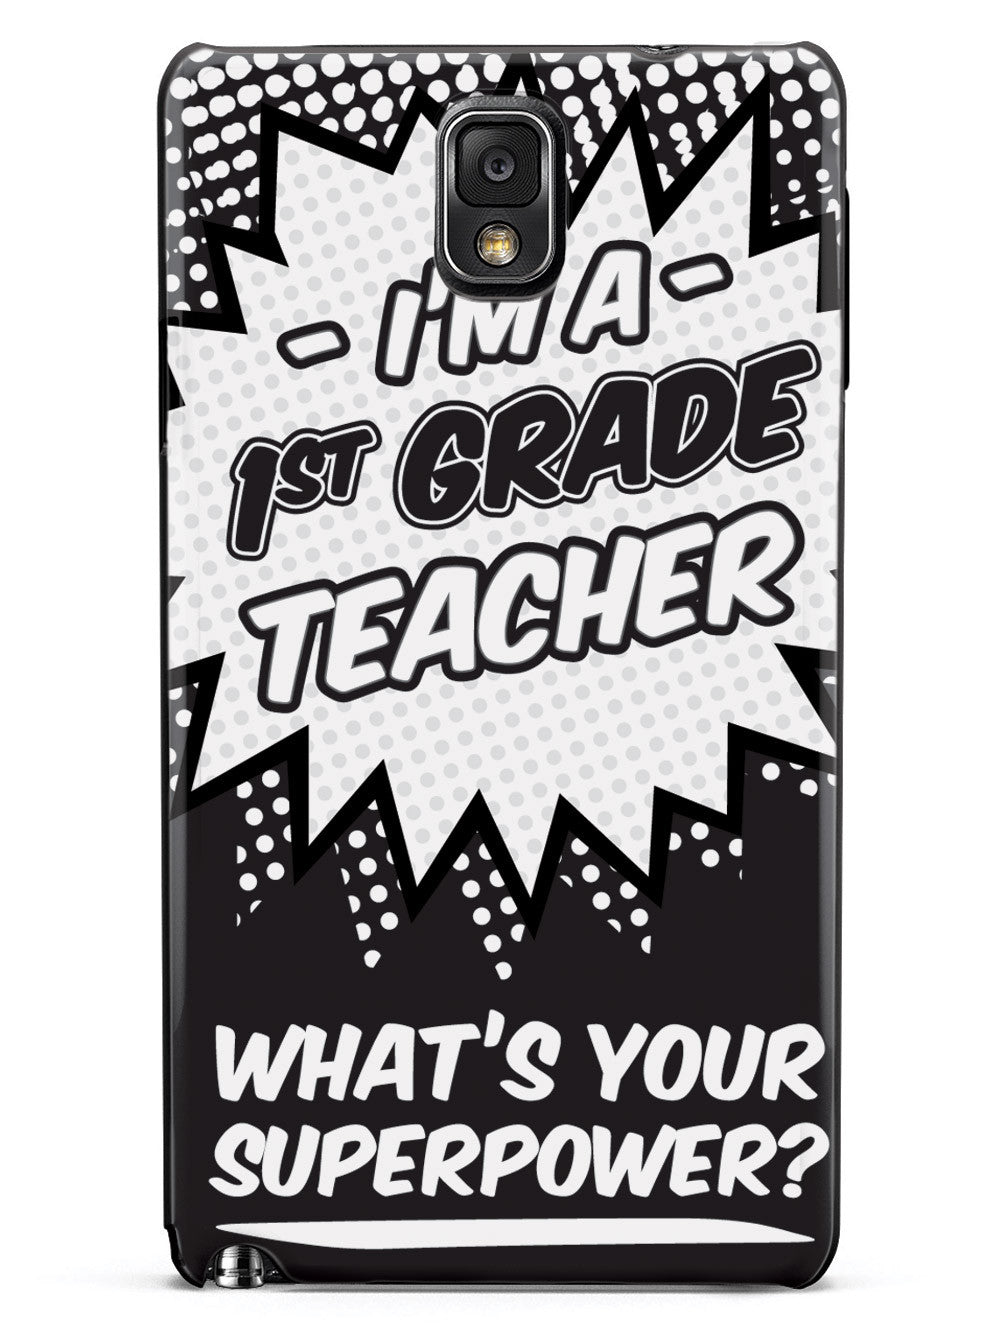 1st Grade Teacher - What's Your Superpower? Case